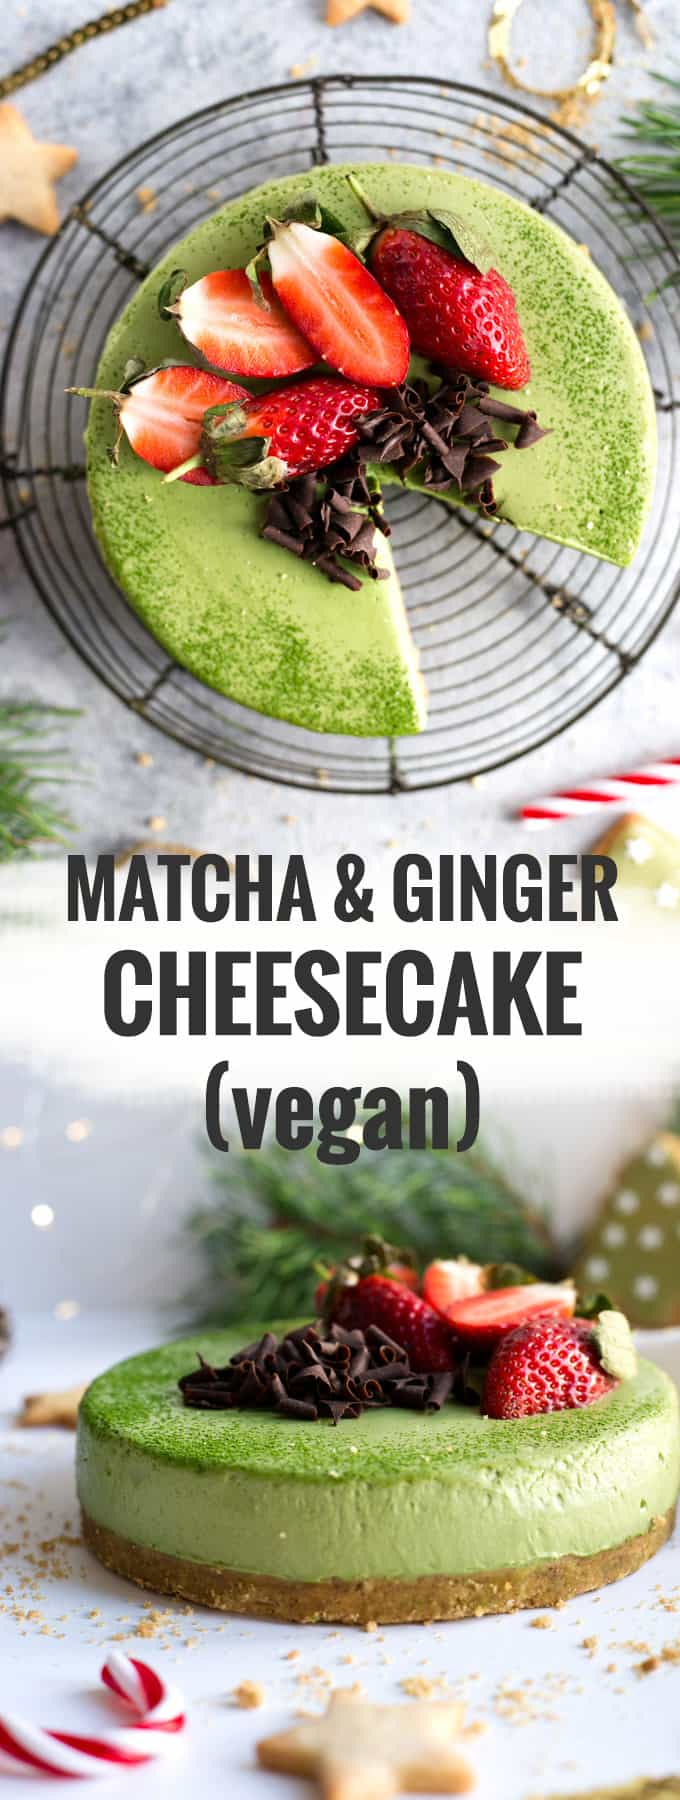 Delicious matcha cheesecake with ginger flavoured base. Velvety smooth and creamy cake, 100% vegan! #cheesecake #matcha #vegan #dairyfree